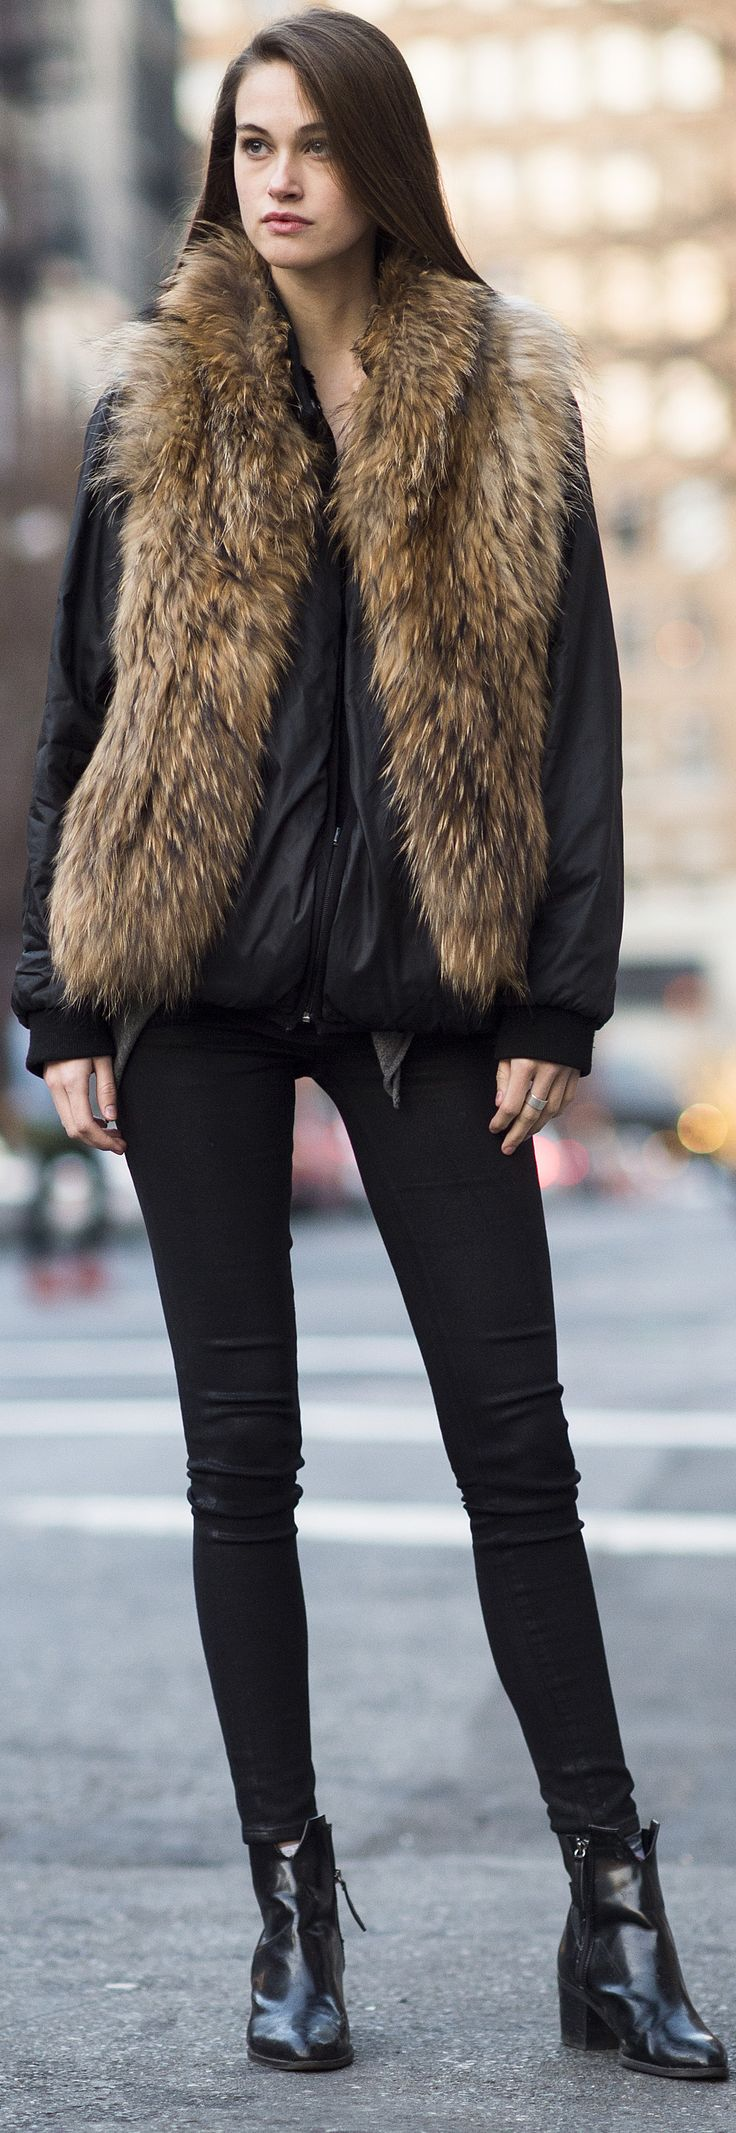 What Fashion Style Has Furry Boots